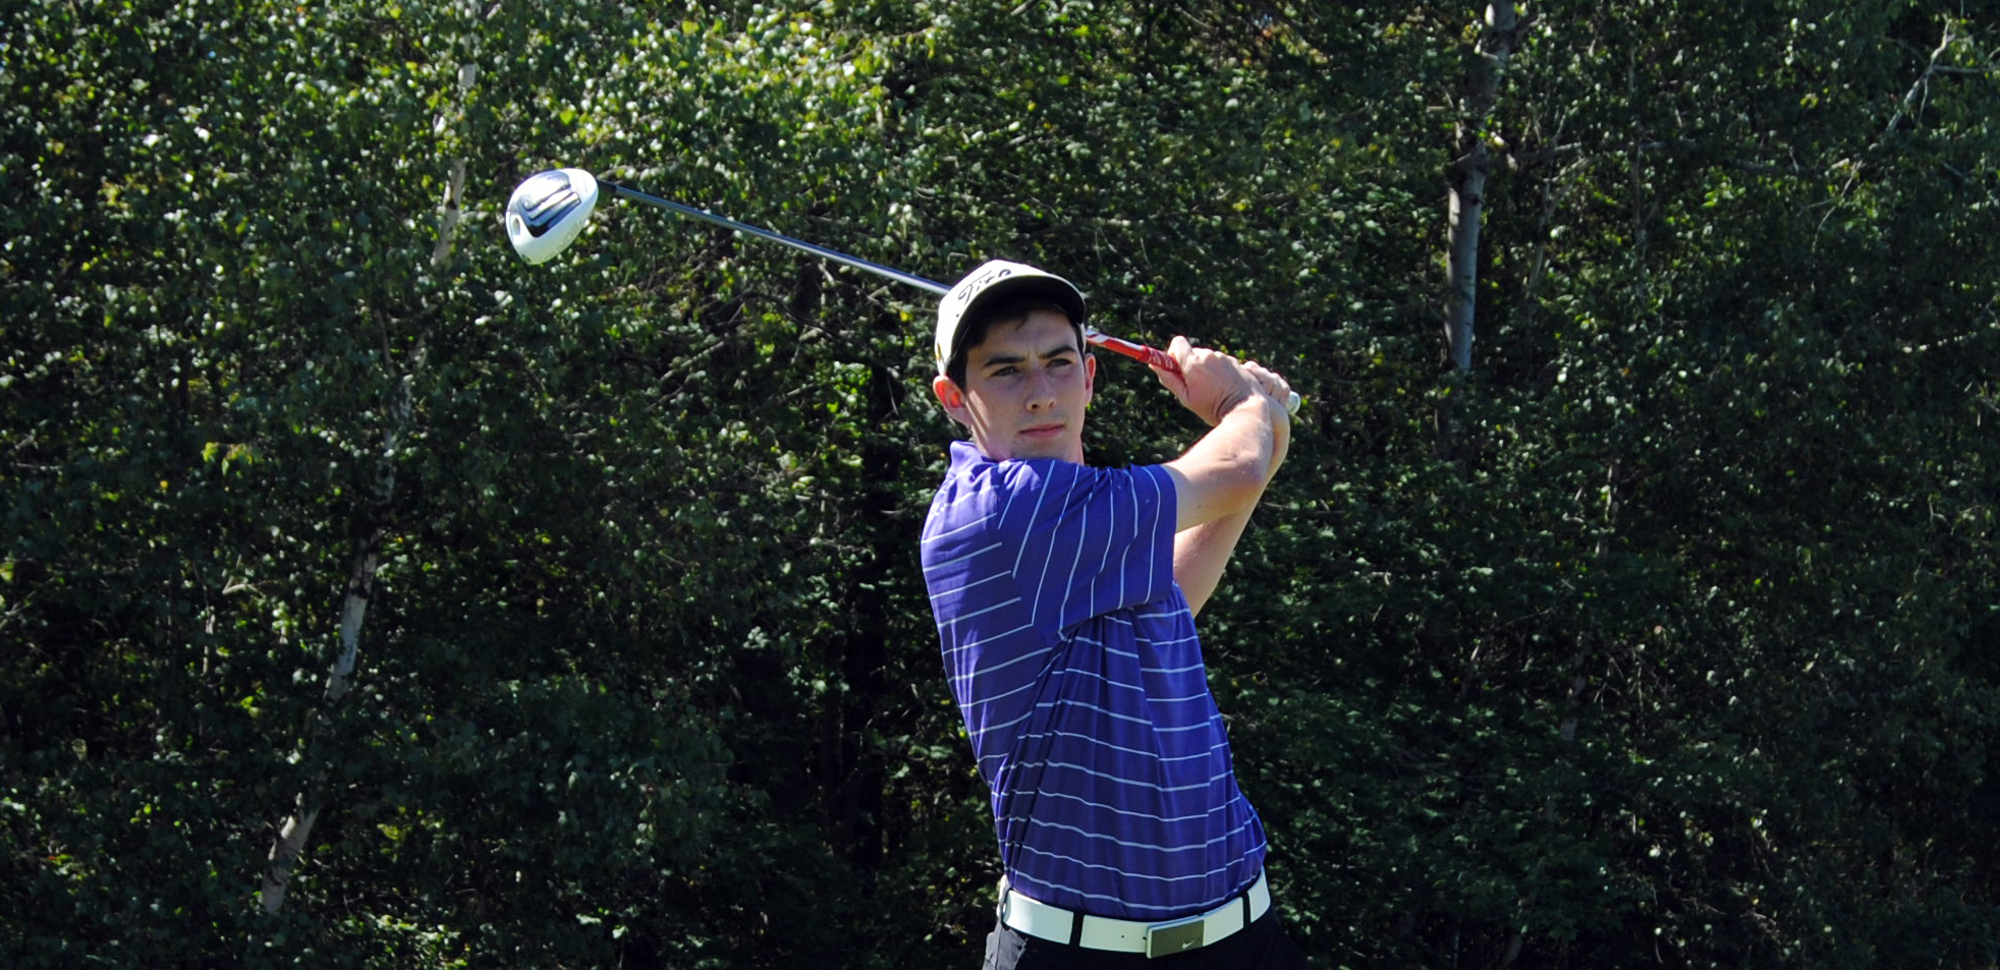 Sophomore Kyle Hayes finished tied for 10th at the AGA Collegiate Championships.